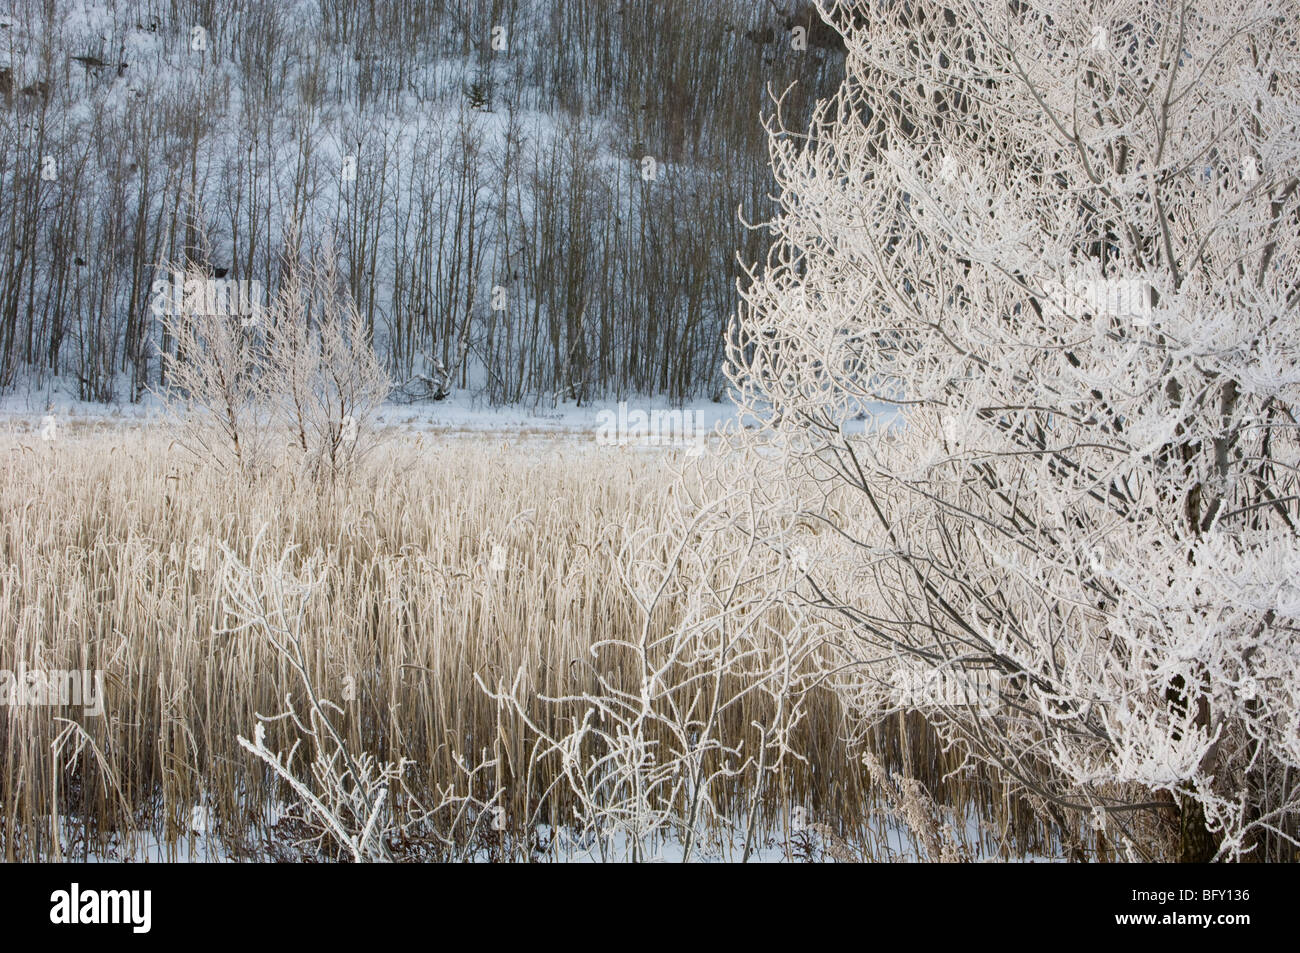 Frosted trees and common reeds near open water of Robinson Creek, Greater Sudbury, Ontario, Canada Stock Photo